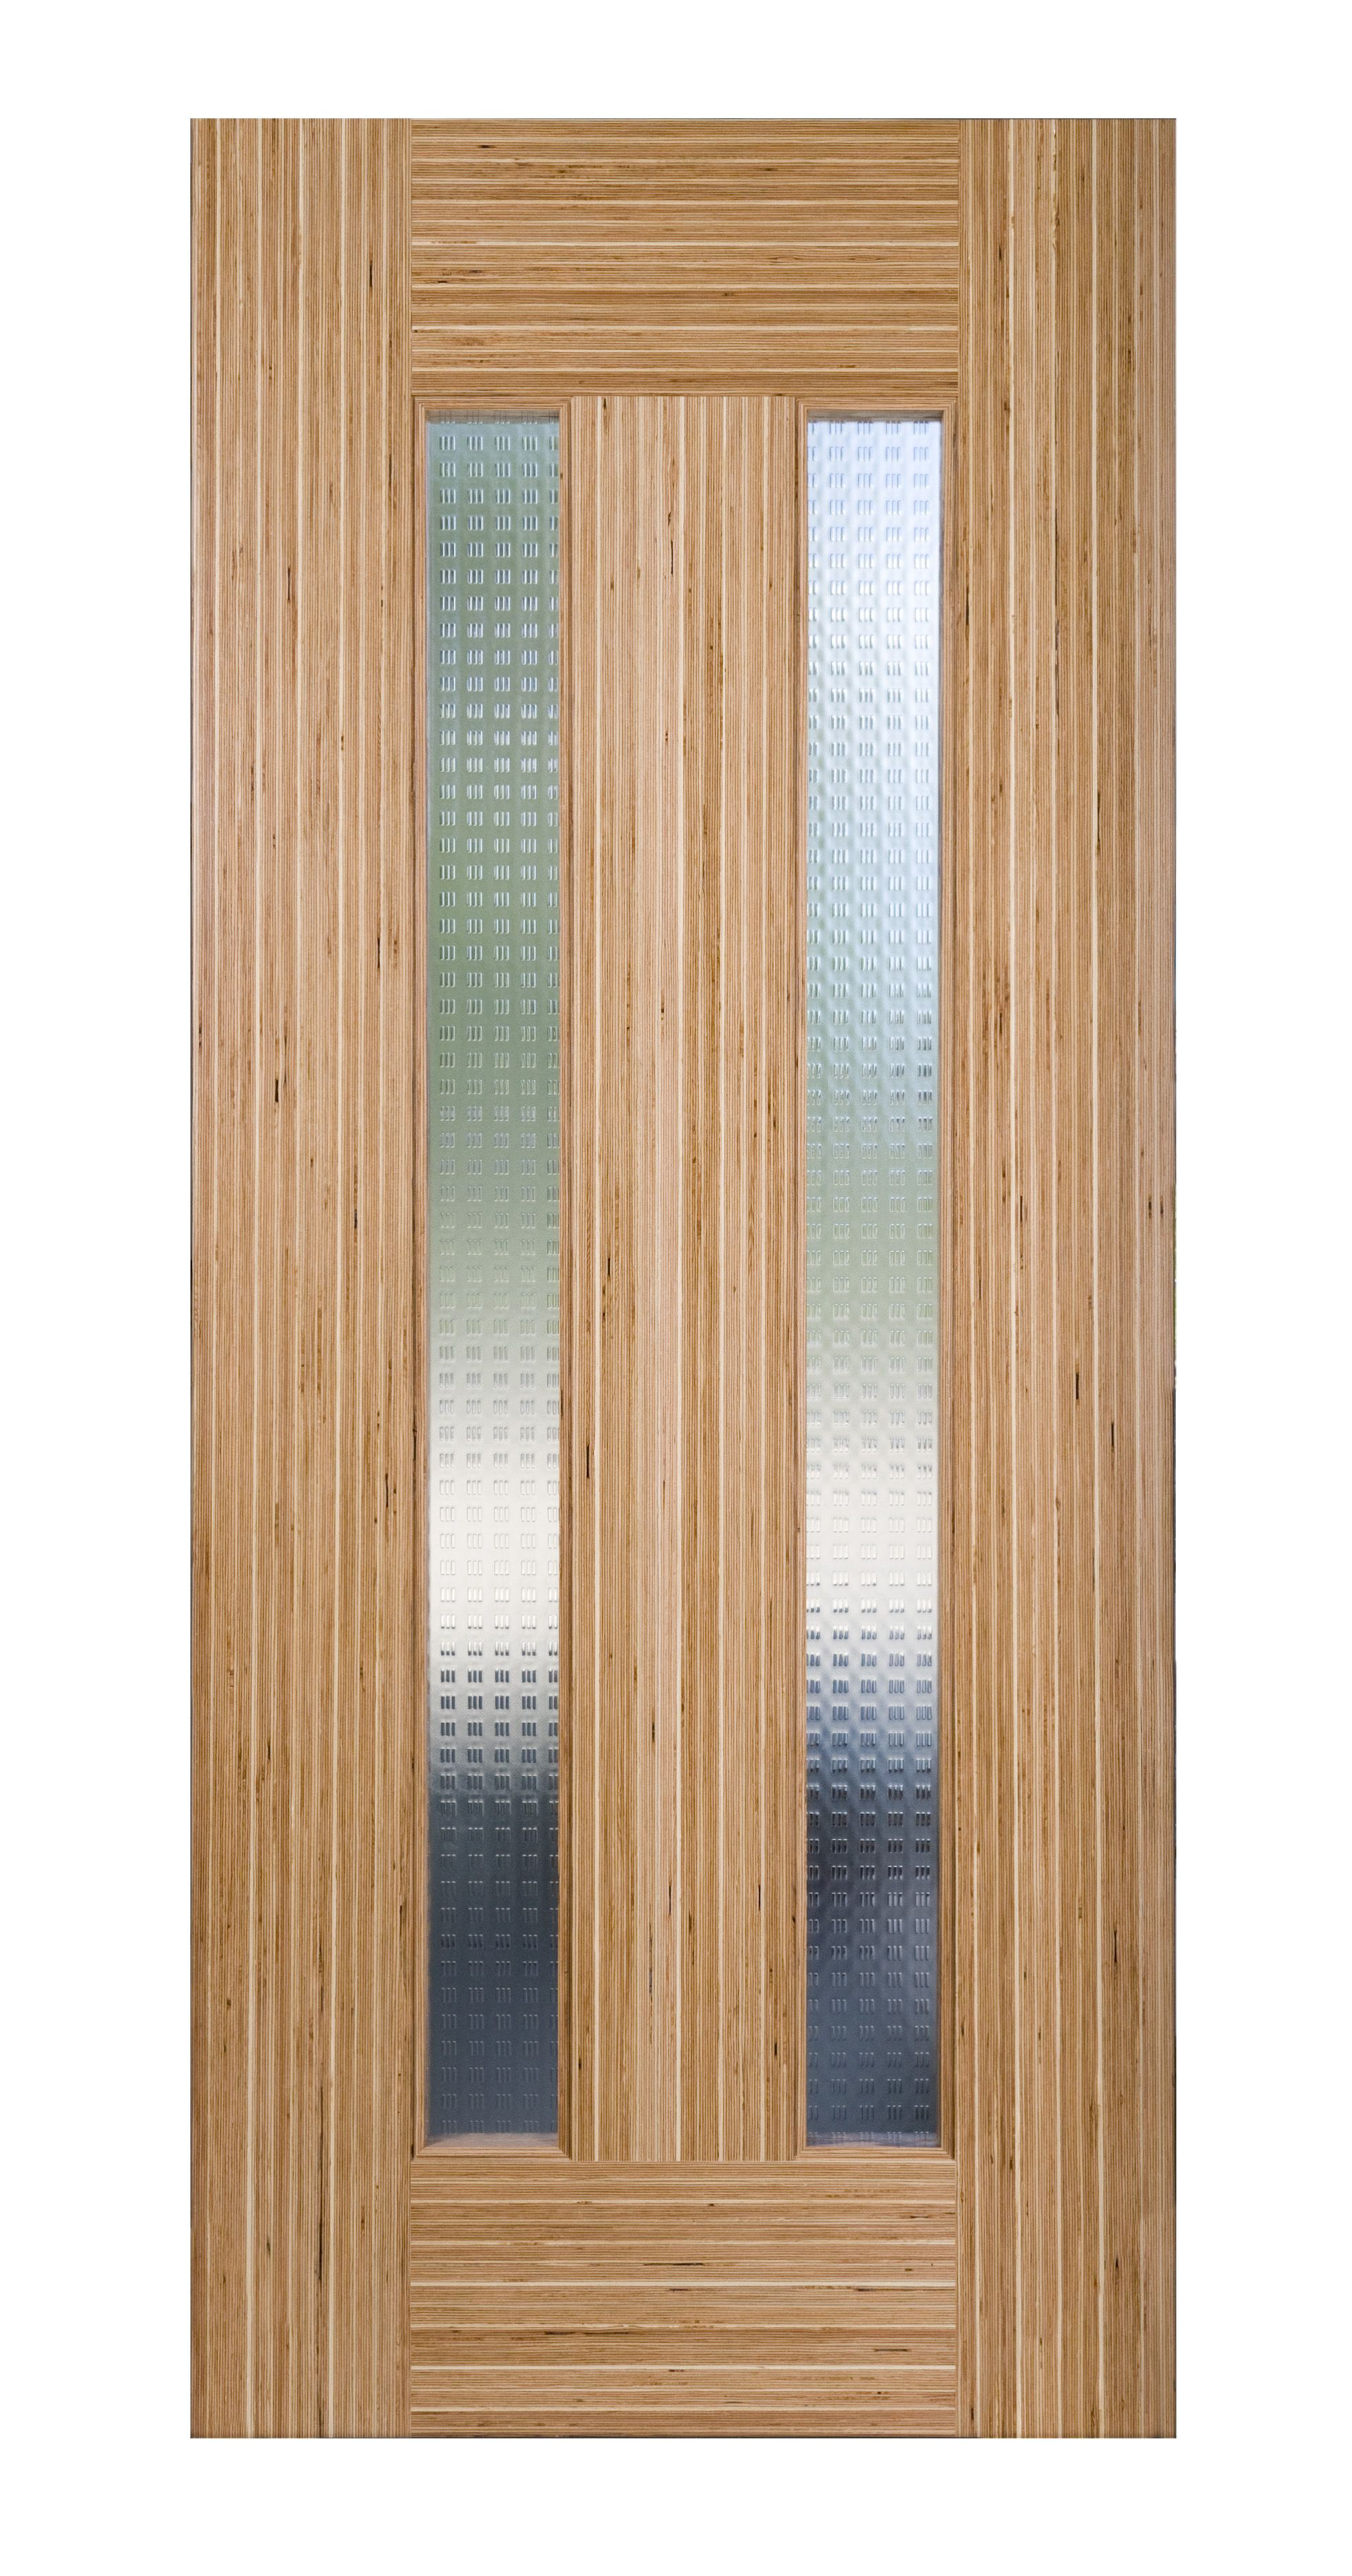 This Is An Lvl Stile And Rail Door From Trustile S Tru Modern Collection It Includes Decorative Contemporary Interior Doors Contemporary Doors Modern Door